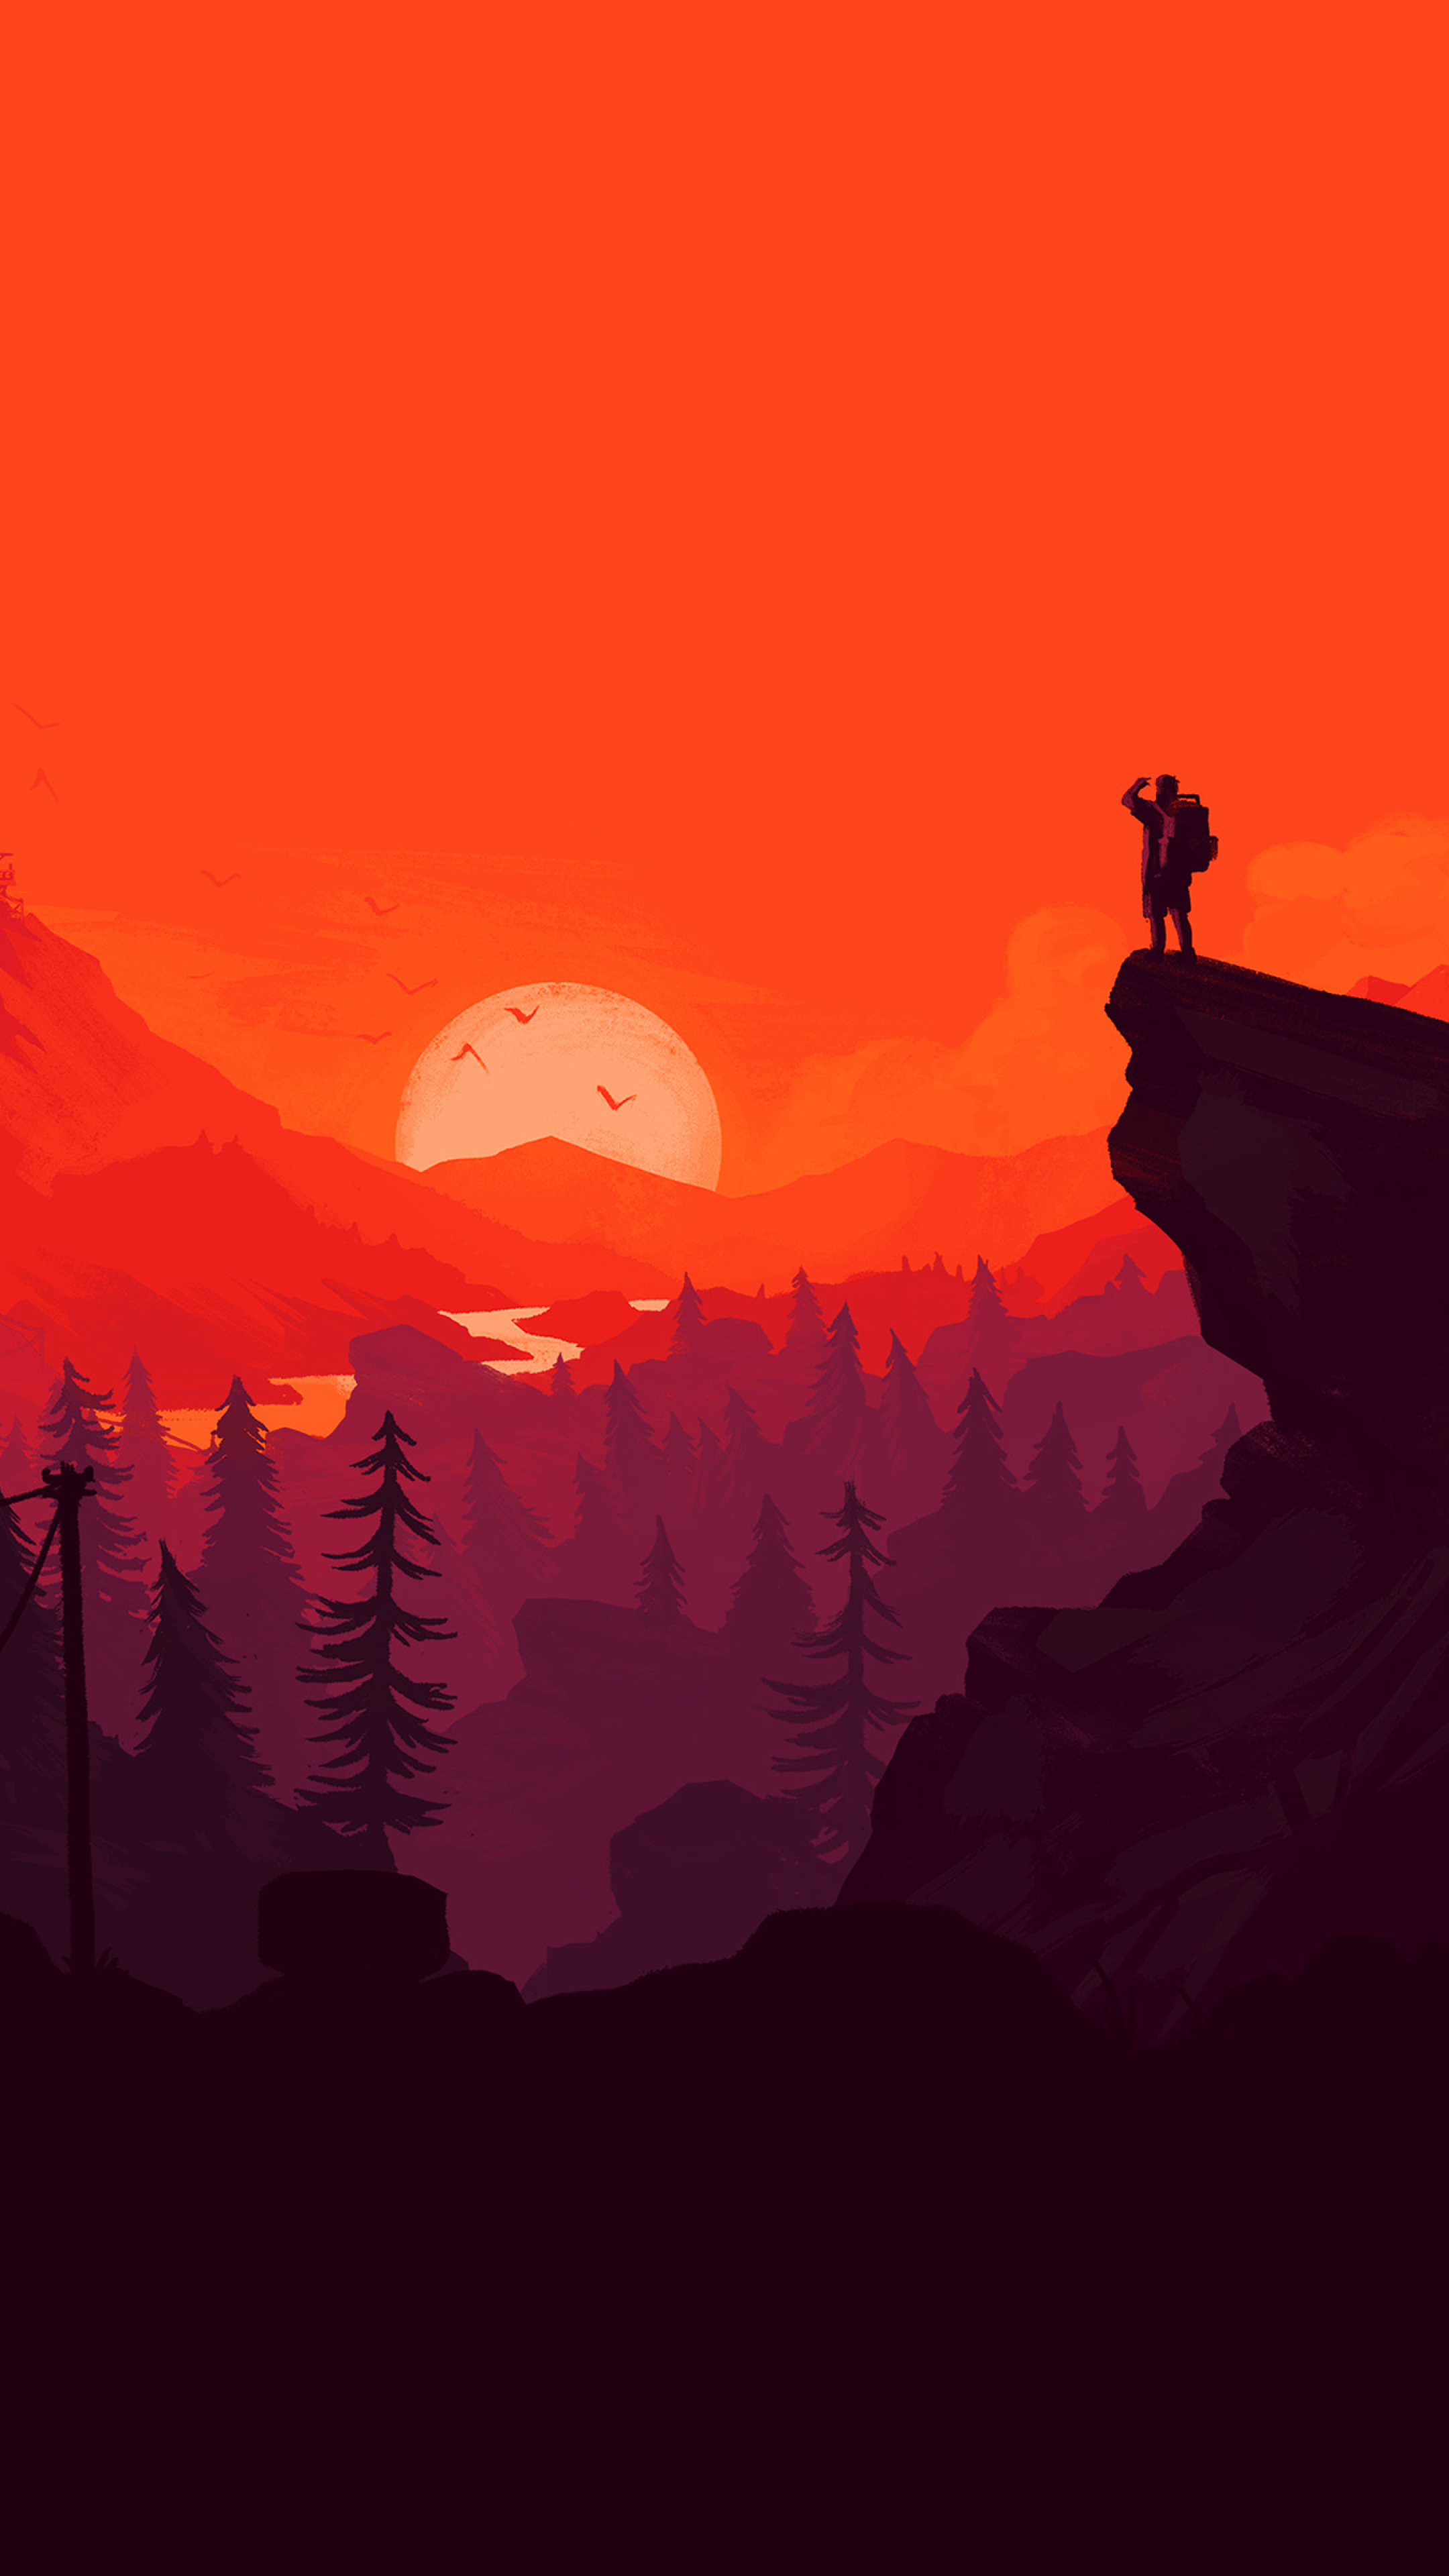 2160x3840 Firewatch Digital Art Sony Xperia X Xz Z5 Premium Wallpaper Hd Artist 4k Wallpapers Images Photos And Background